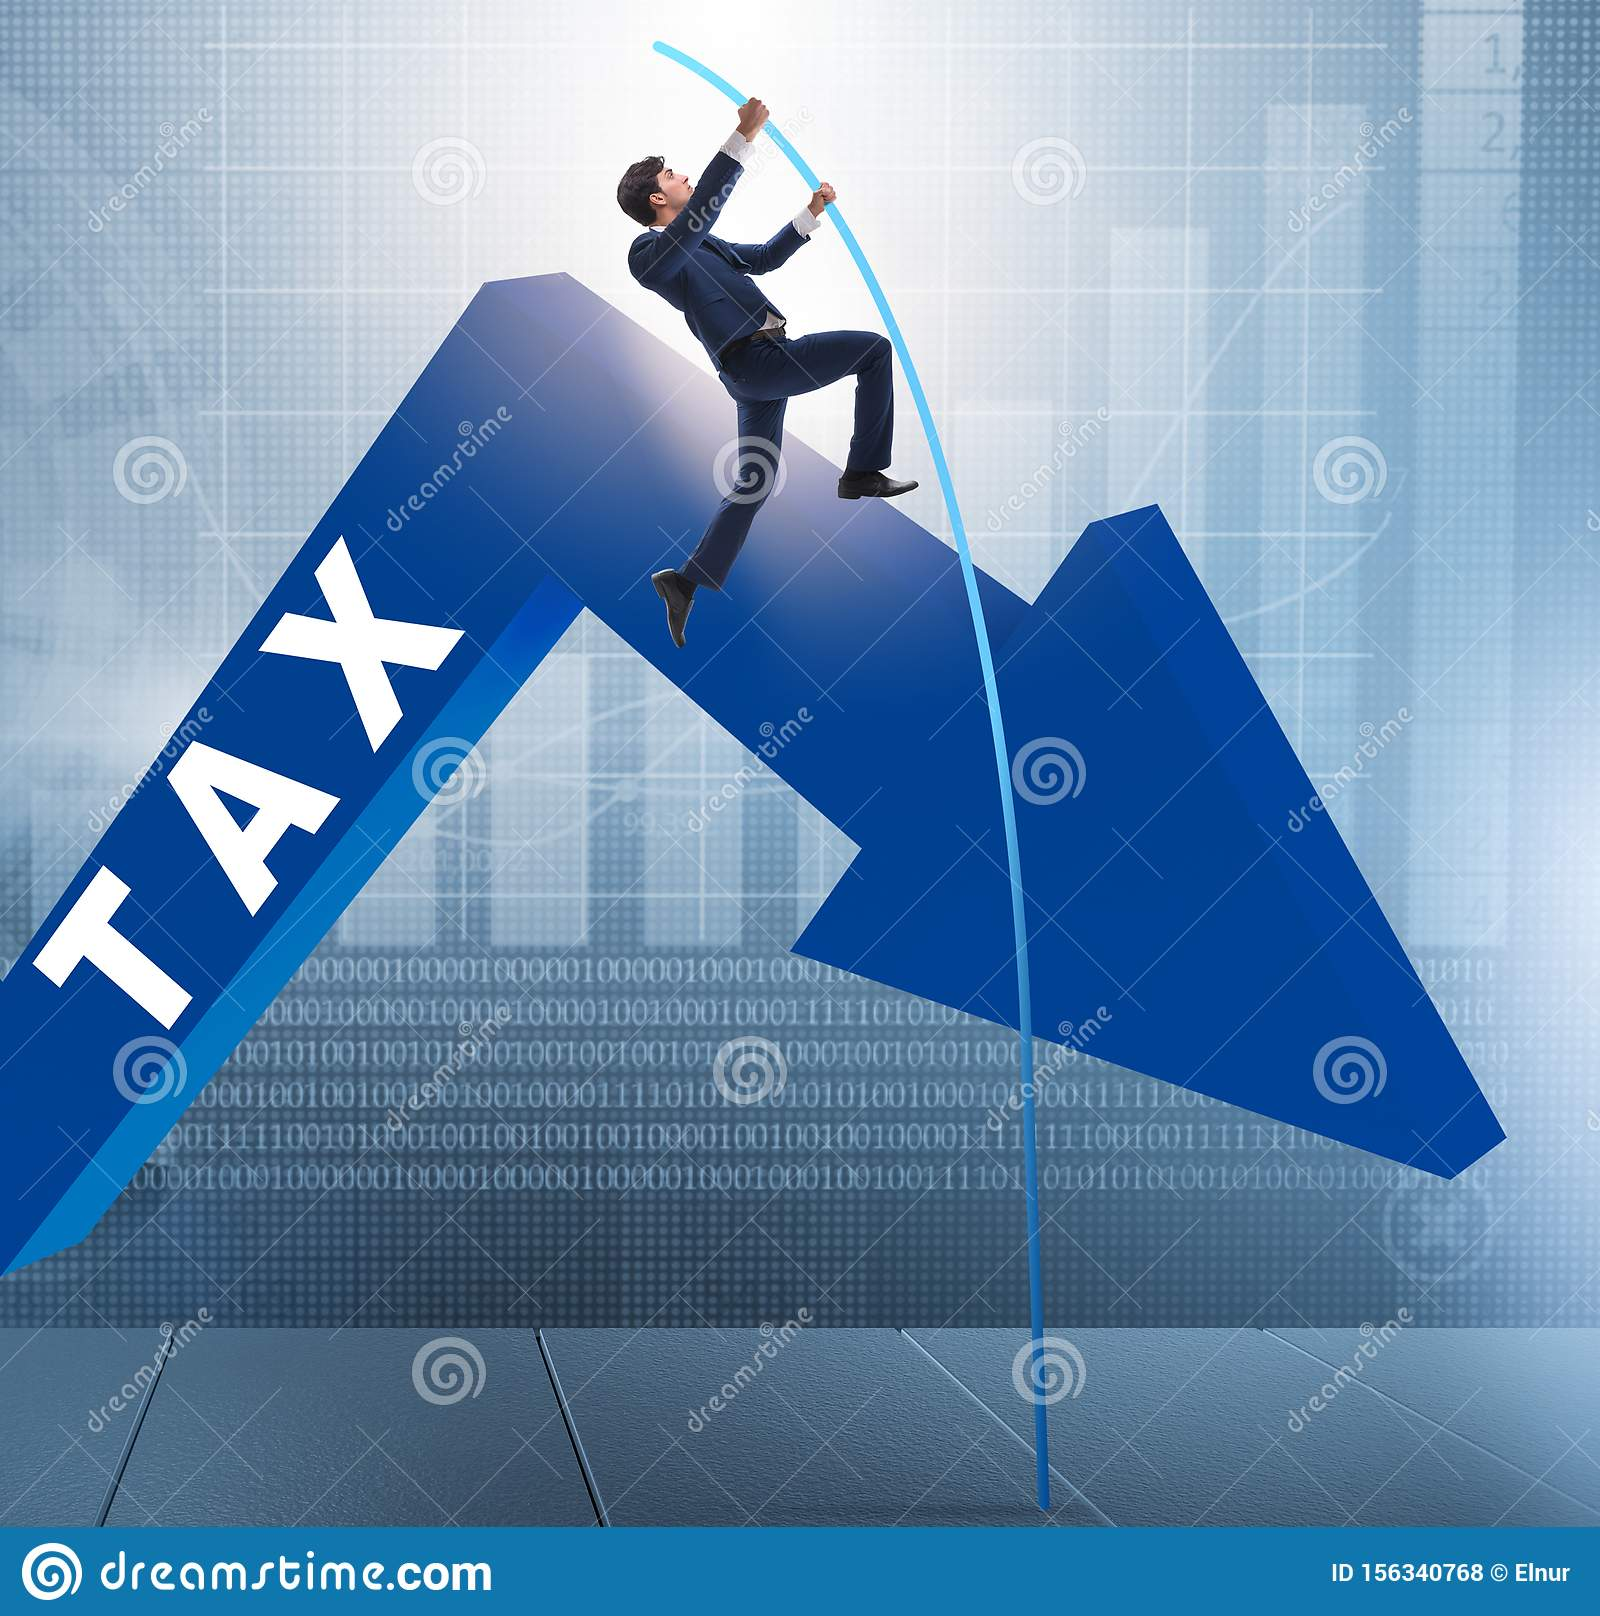 Businessman Jumping Over Tax In Tax Evasion Avoidance Concept Stock Illustration